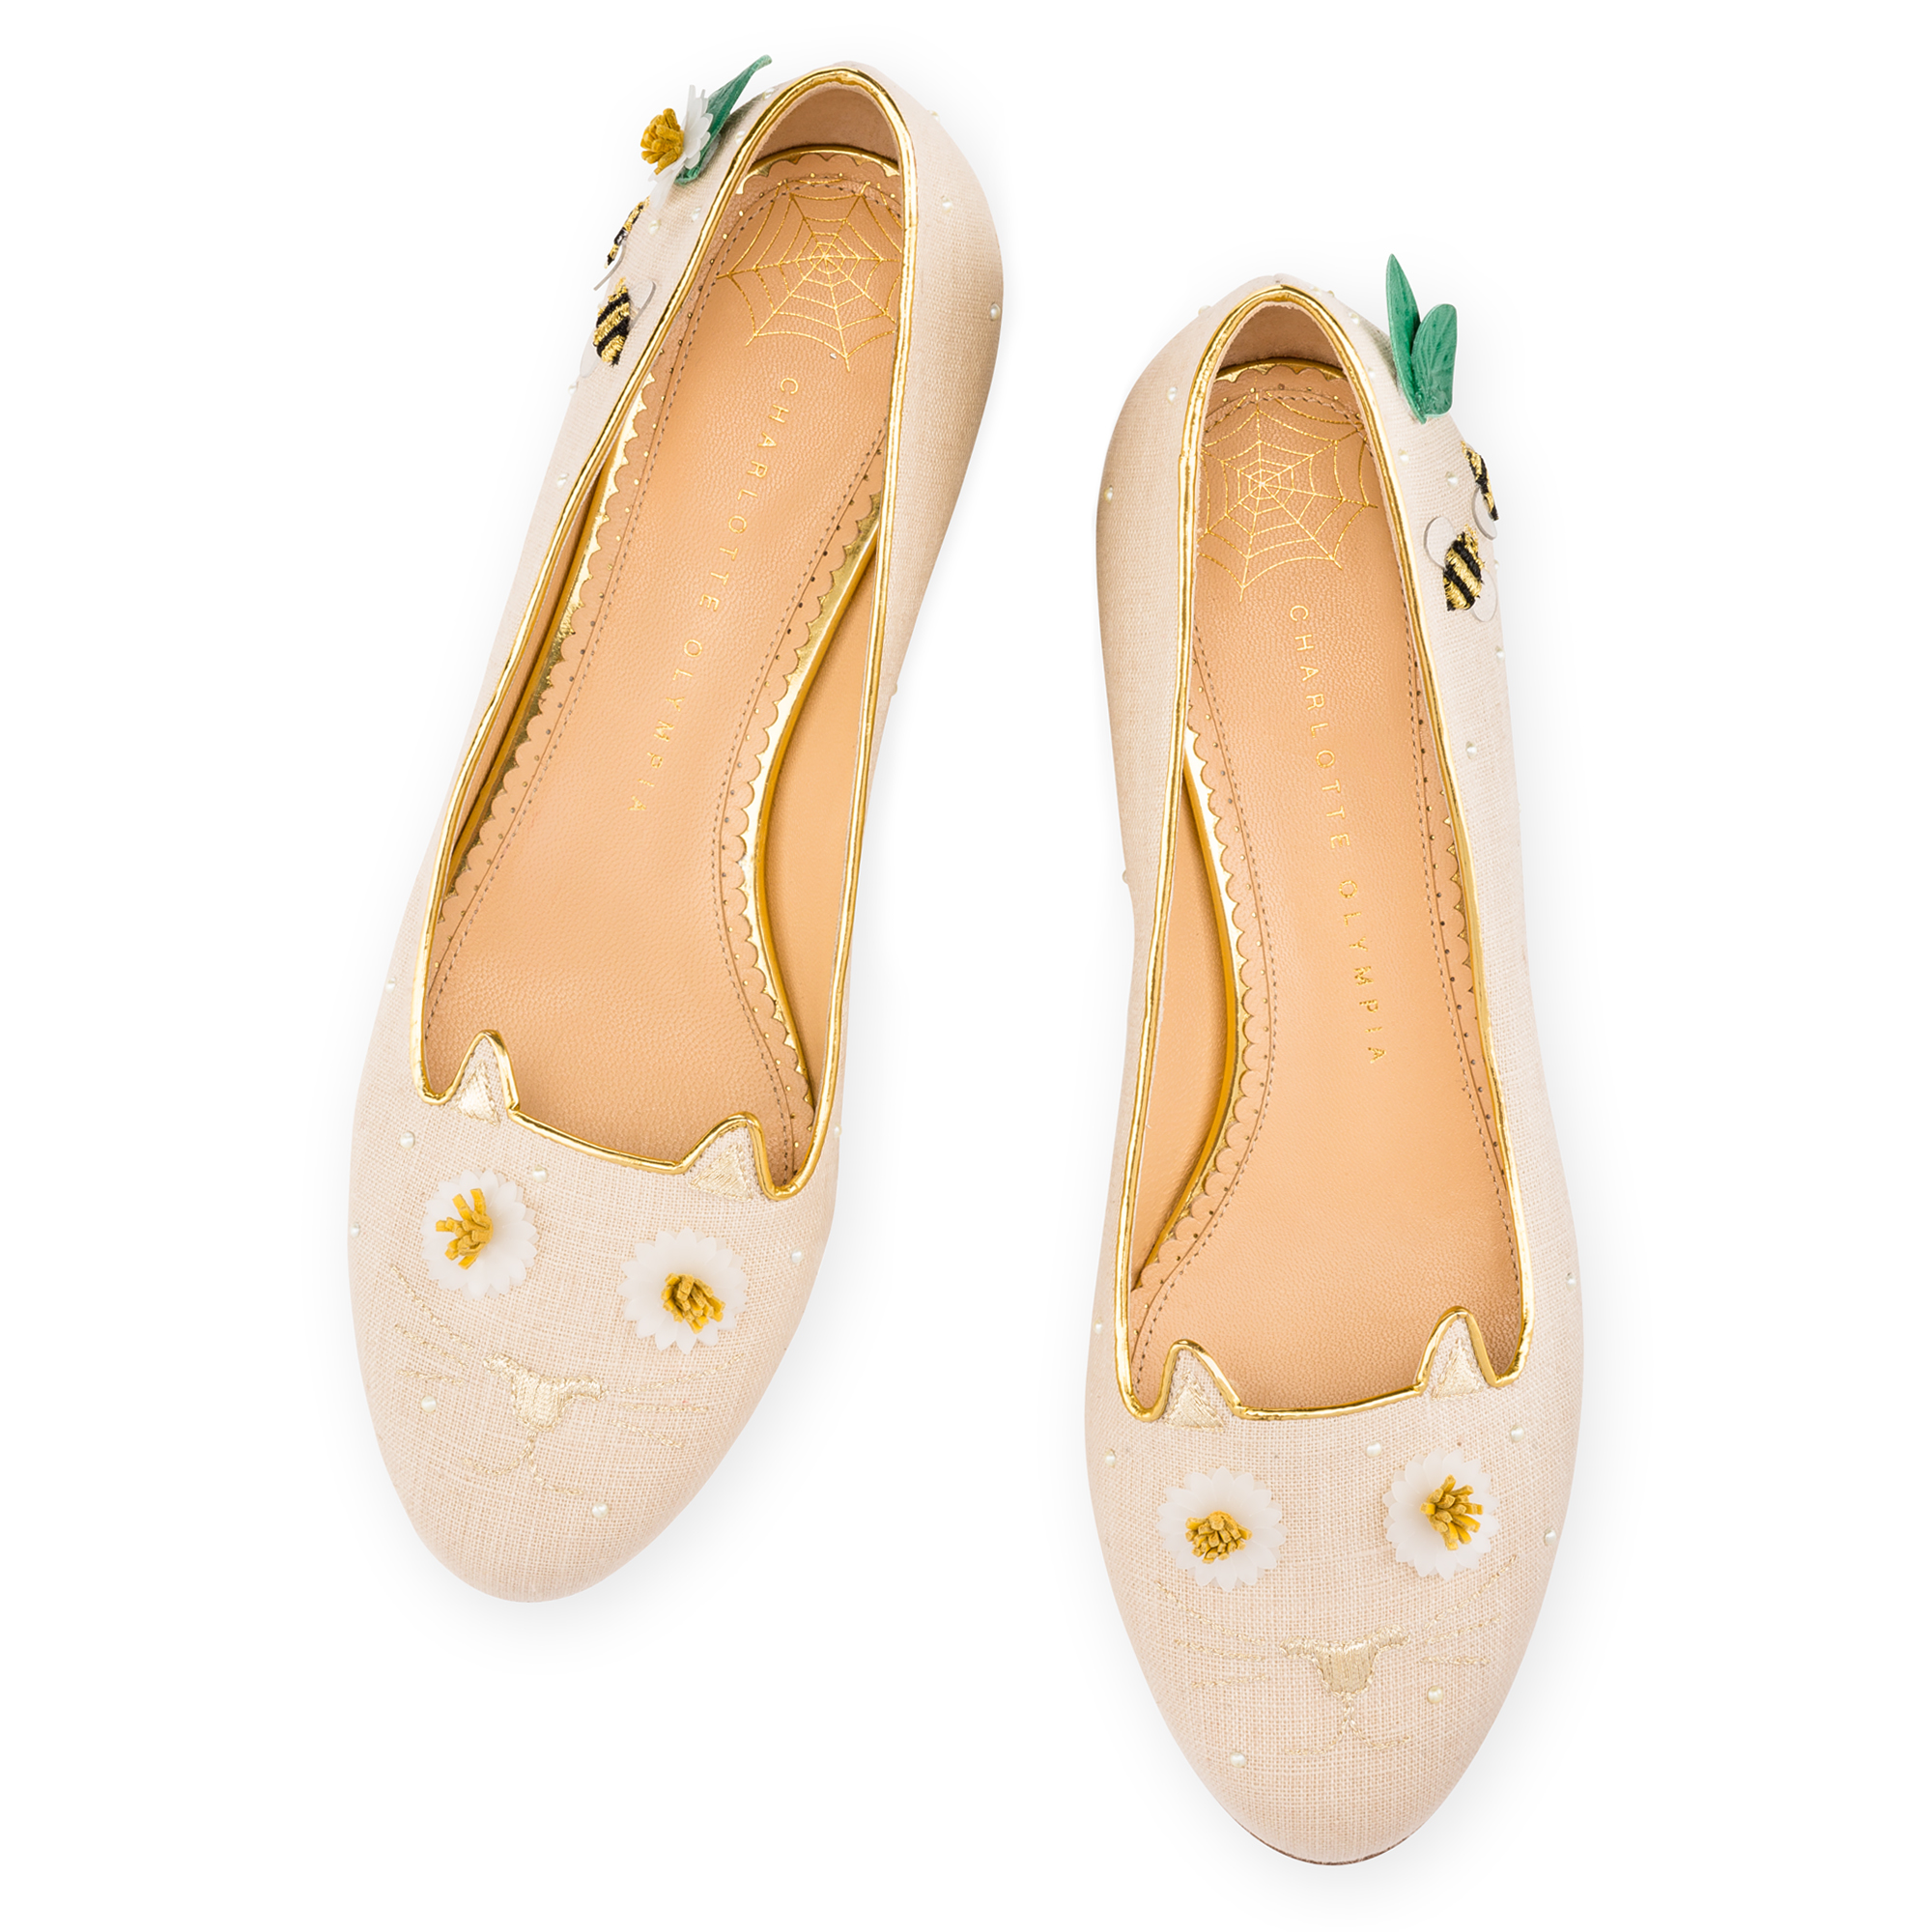 charlotte-olympia-floral-kitty-flats-aed-2250